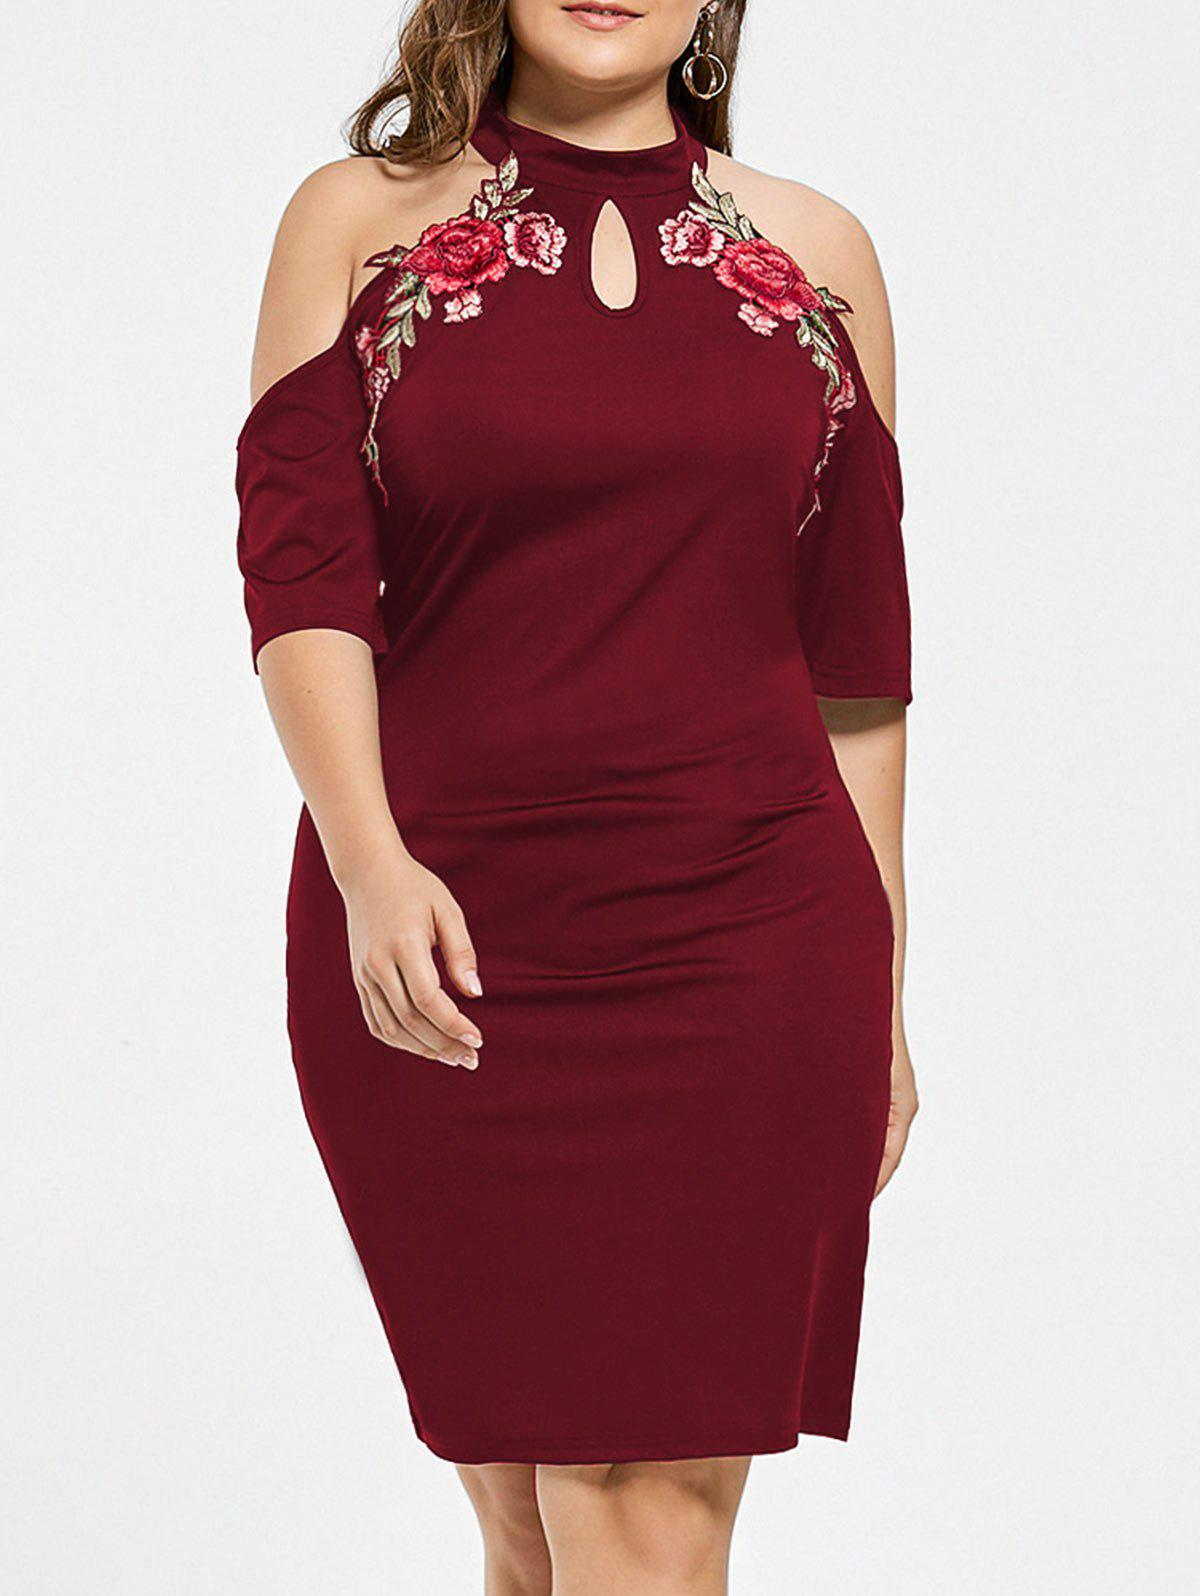 Plus Size Embroidered Cold Shoulder Keyhole DressWOMEN<br><br>Size: 2XL; Color: WINE RED; Style: Club; Material: Cotton,Polyester; Silhouette: Bodycon; Dresses Length: Knee-Length; Neckline: Keyhole Neck; Sleeve Length: Short Sleeves; Embellishment: Appliques; Pattern Type: Floral; Elasticity: Elastic; With Belt: No; Season: Fall,Spring,Summer; Weight: 0.3700kg; Package Contents: 1 x Dress;